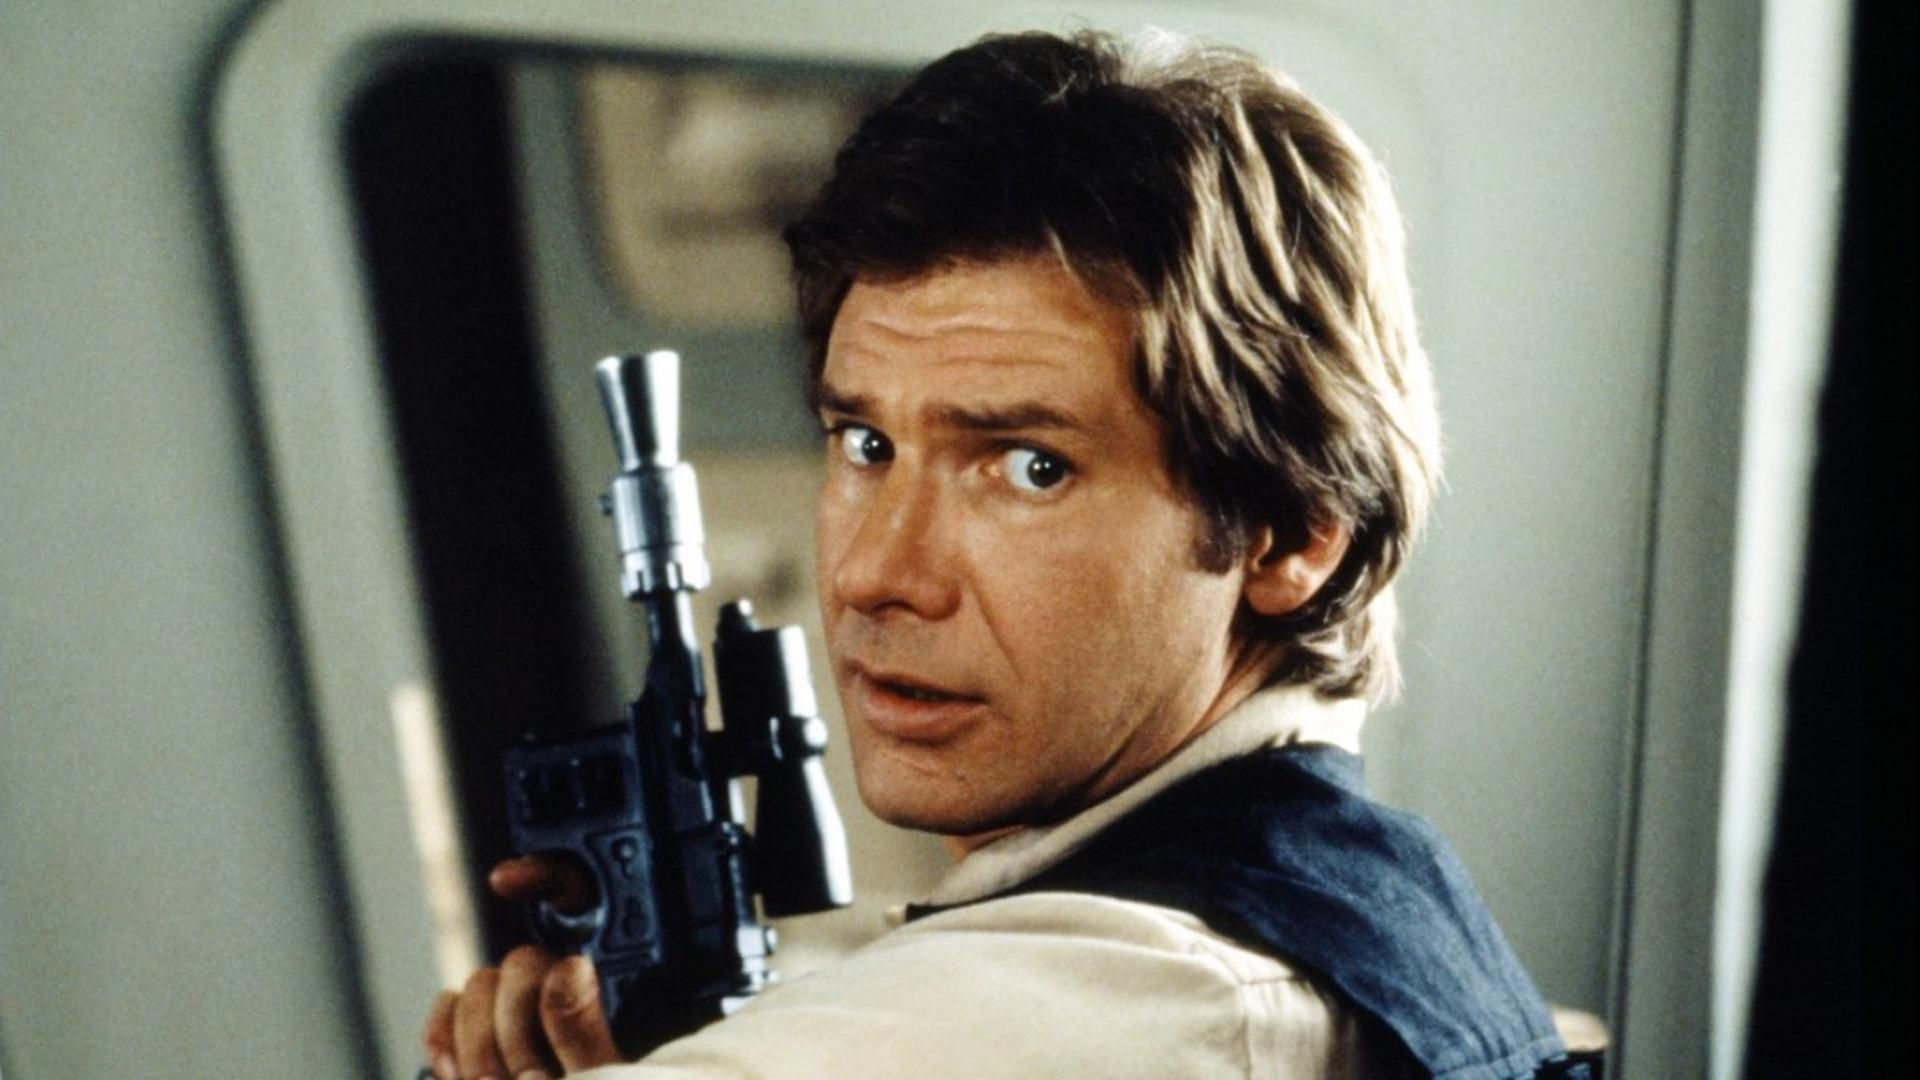 Star Wars Han Solo Images